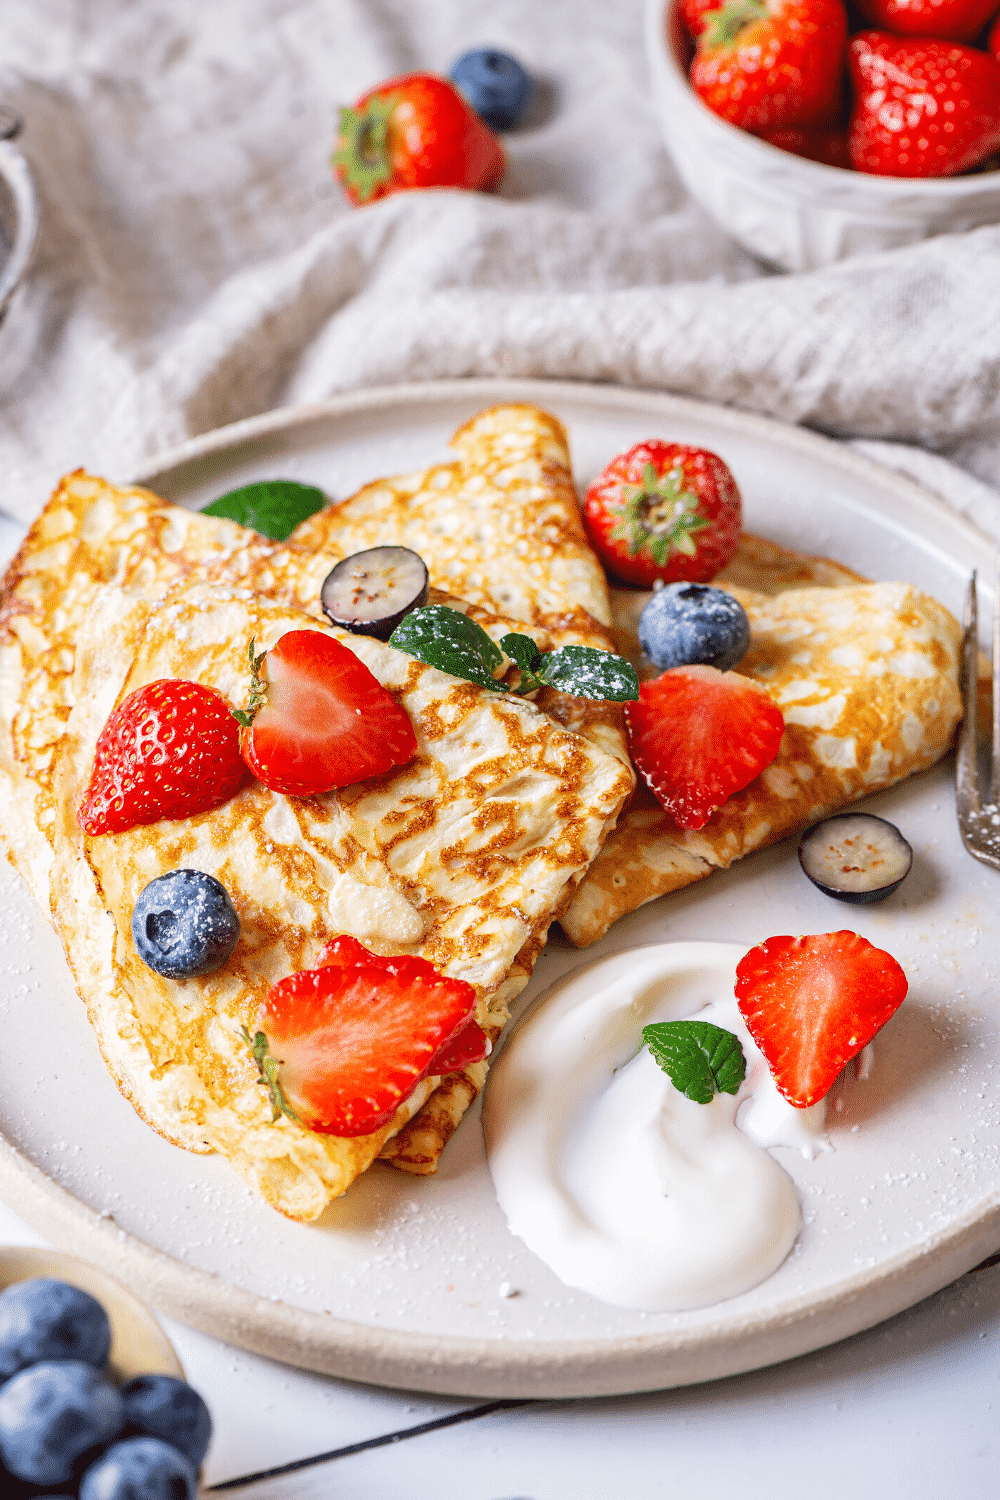 A white plate with a few crepes on it. There are slices of strawberries and a few blueberries on the crepes.